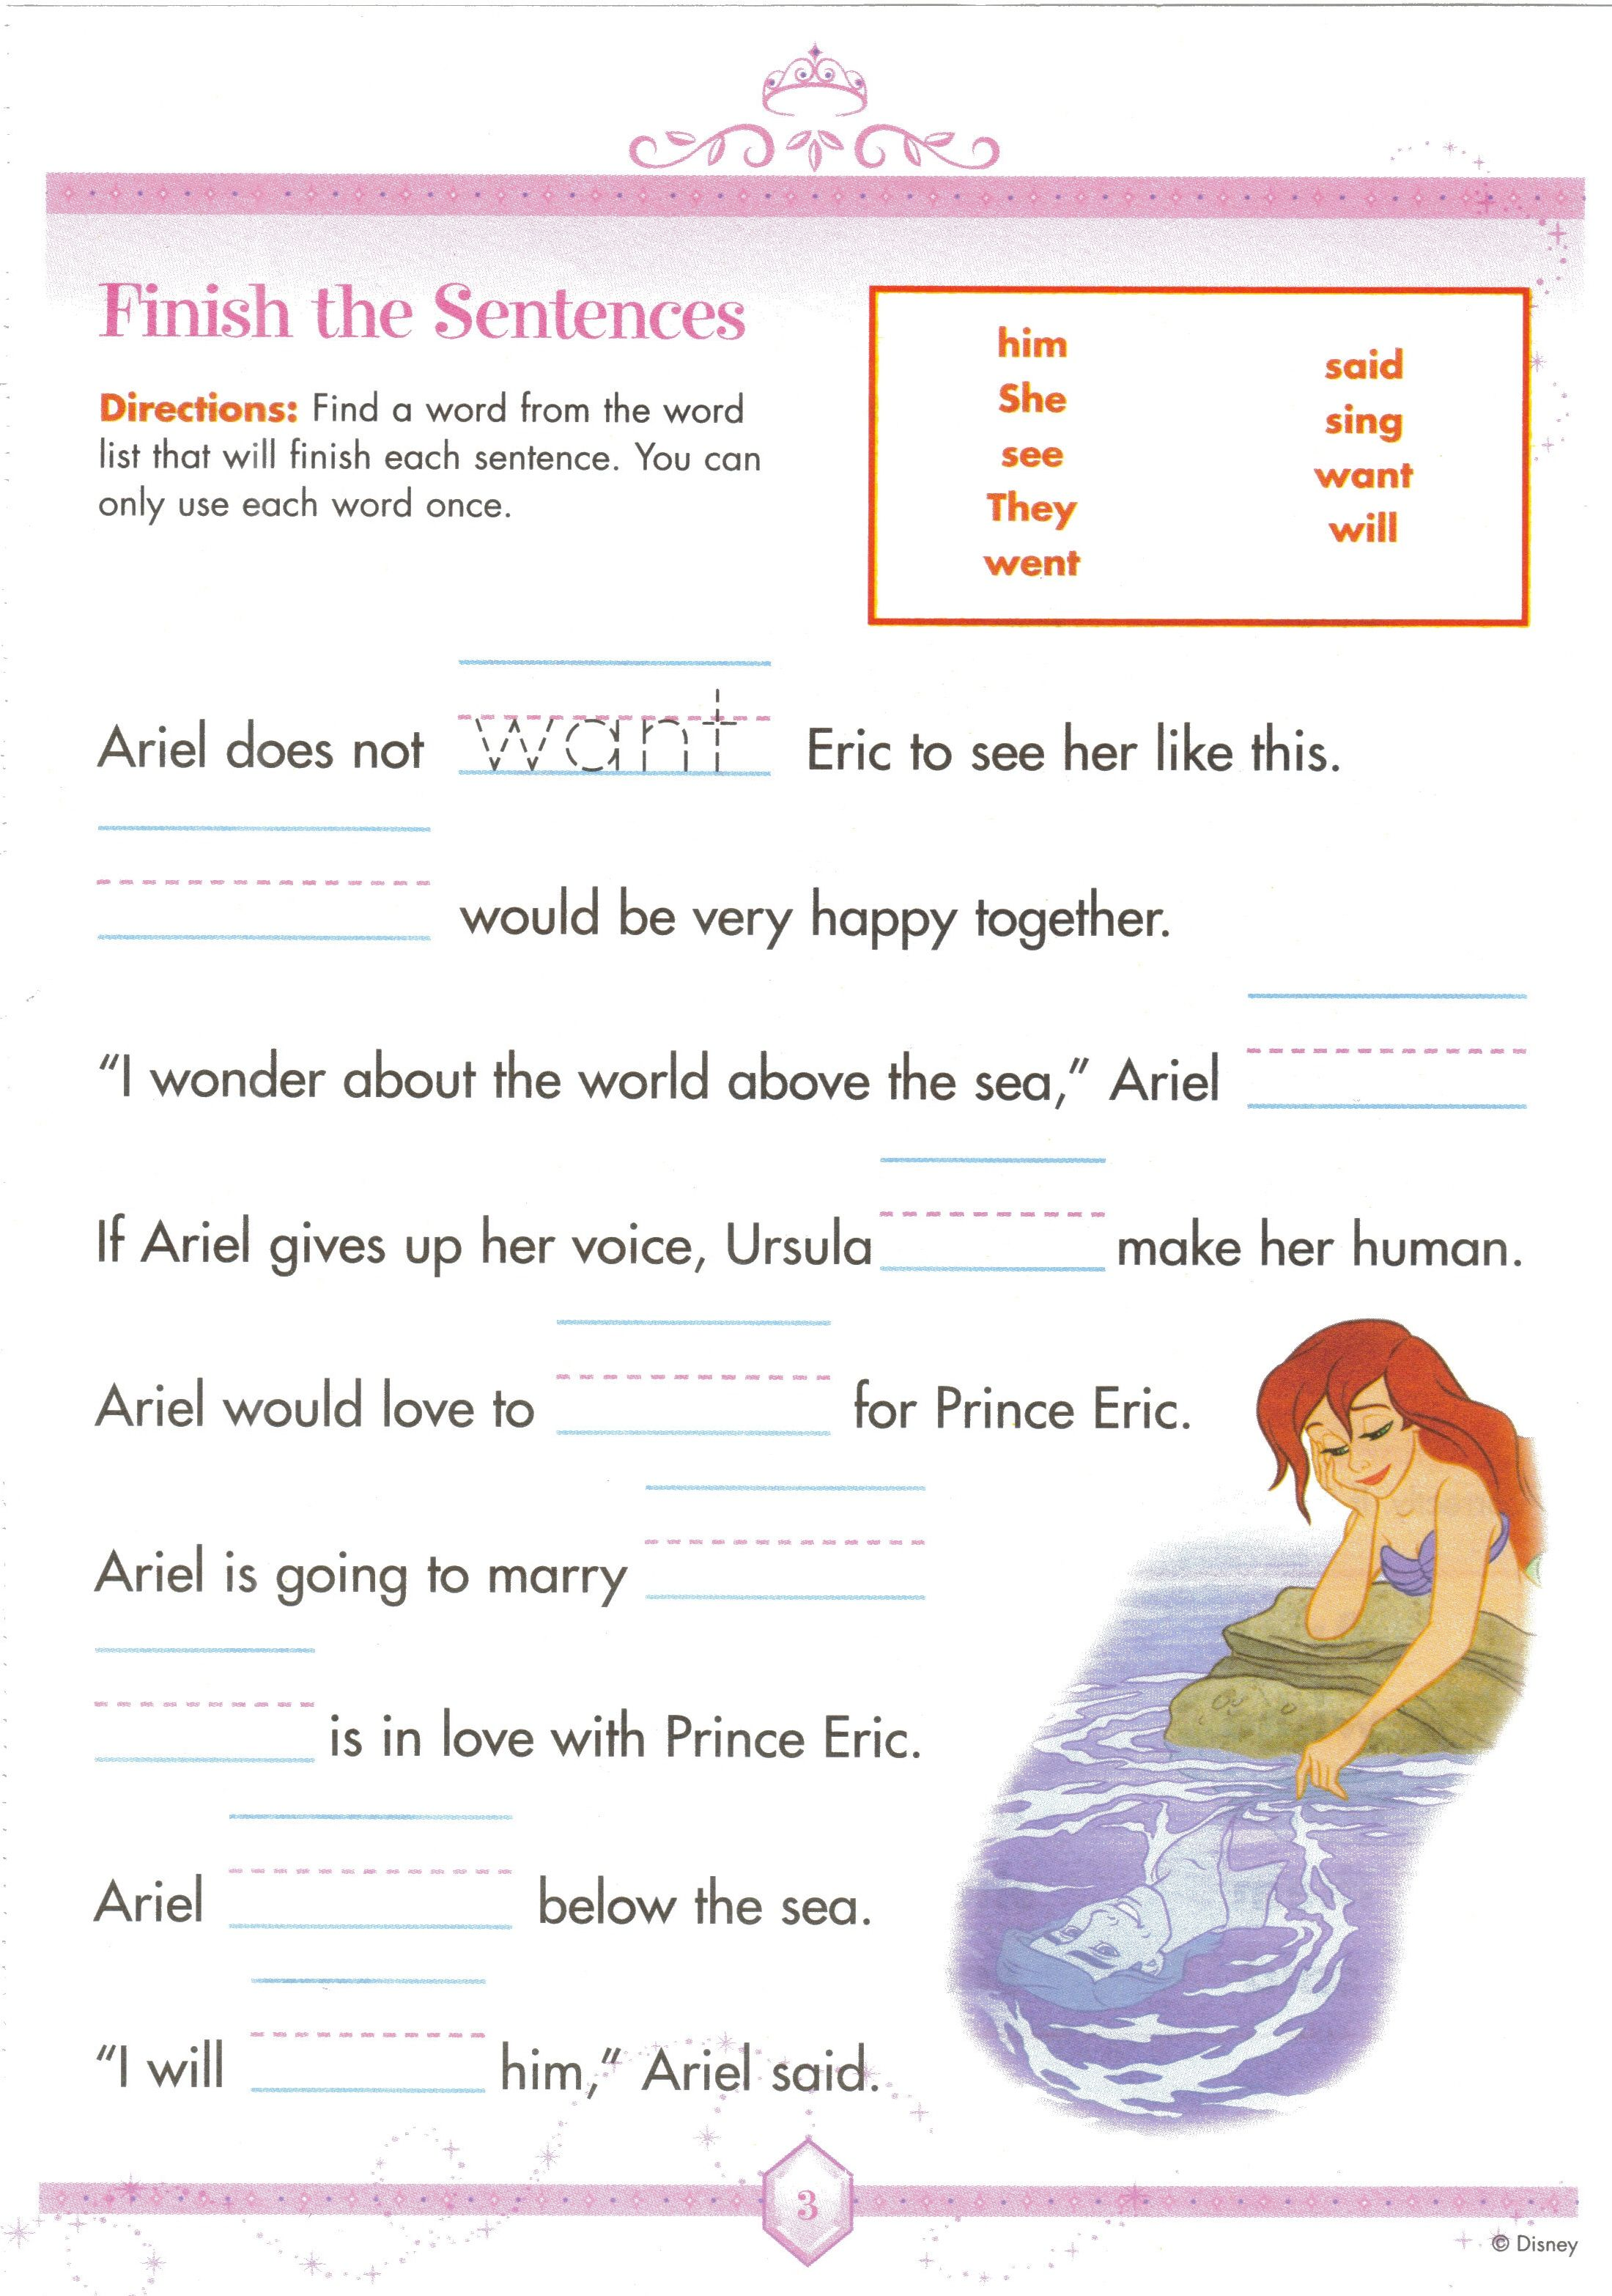 Weirdmailus  Winsome  Images About Worksheets On Pinterest  Fun Facts For Kids  With Licious  Images About Worksheets On Pinterest  Fun Facts For Kids Earth Day Worksheets And Jungles With Astounding Emotion Regulation Worksheets Also Active Reading Strategies Worksheet In Addition Array Worksheets For Rd Grade And Self Esteem Building Worksheets Printable As Well As Naming Chemical Compounds Worksheet With Answers Additionally Graph Pictures Worksheets Coordinates From Pinterestcom With Weirdmailus  Licious  Images About Worksheets On Pinterest  Fun Facts For Kids  With Astounding  Images About Worksheets On Pinterest  Fun Facts For Kids Earth Day Worksheets And Jungles And Winsome Emotion Regulation Worksheets Also Active Reading Strategies Worksheet In Addition Array Worksheets For Rd Grade From Pinterestcom